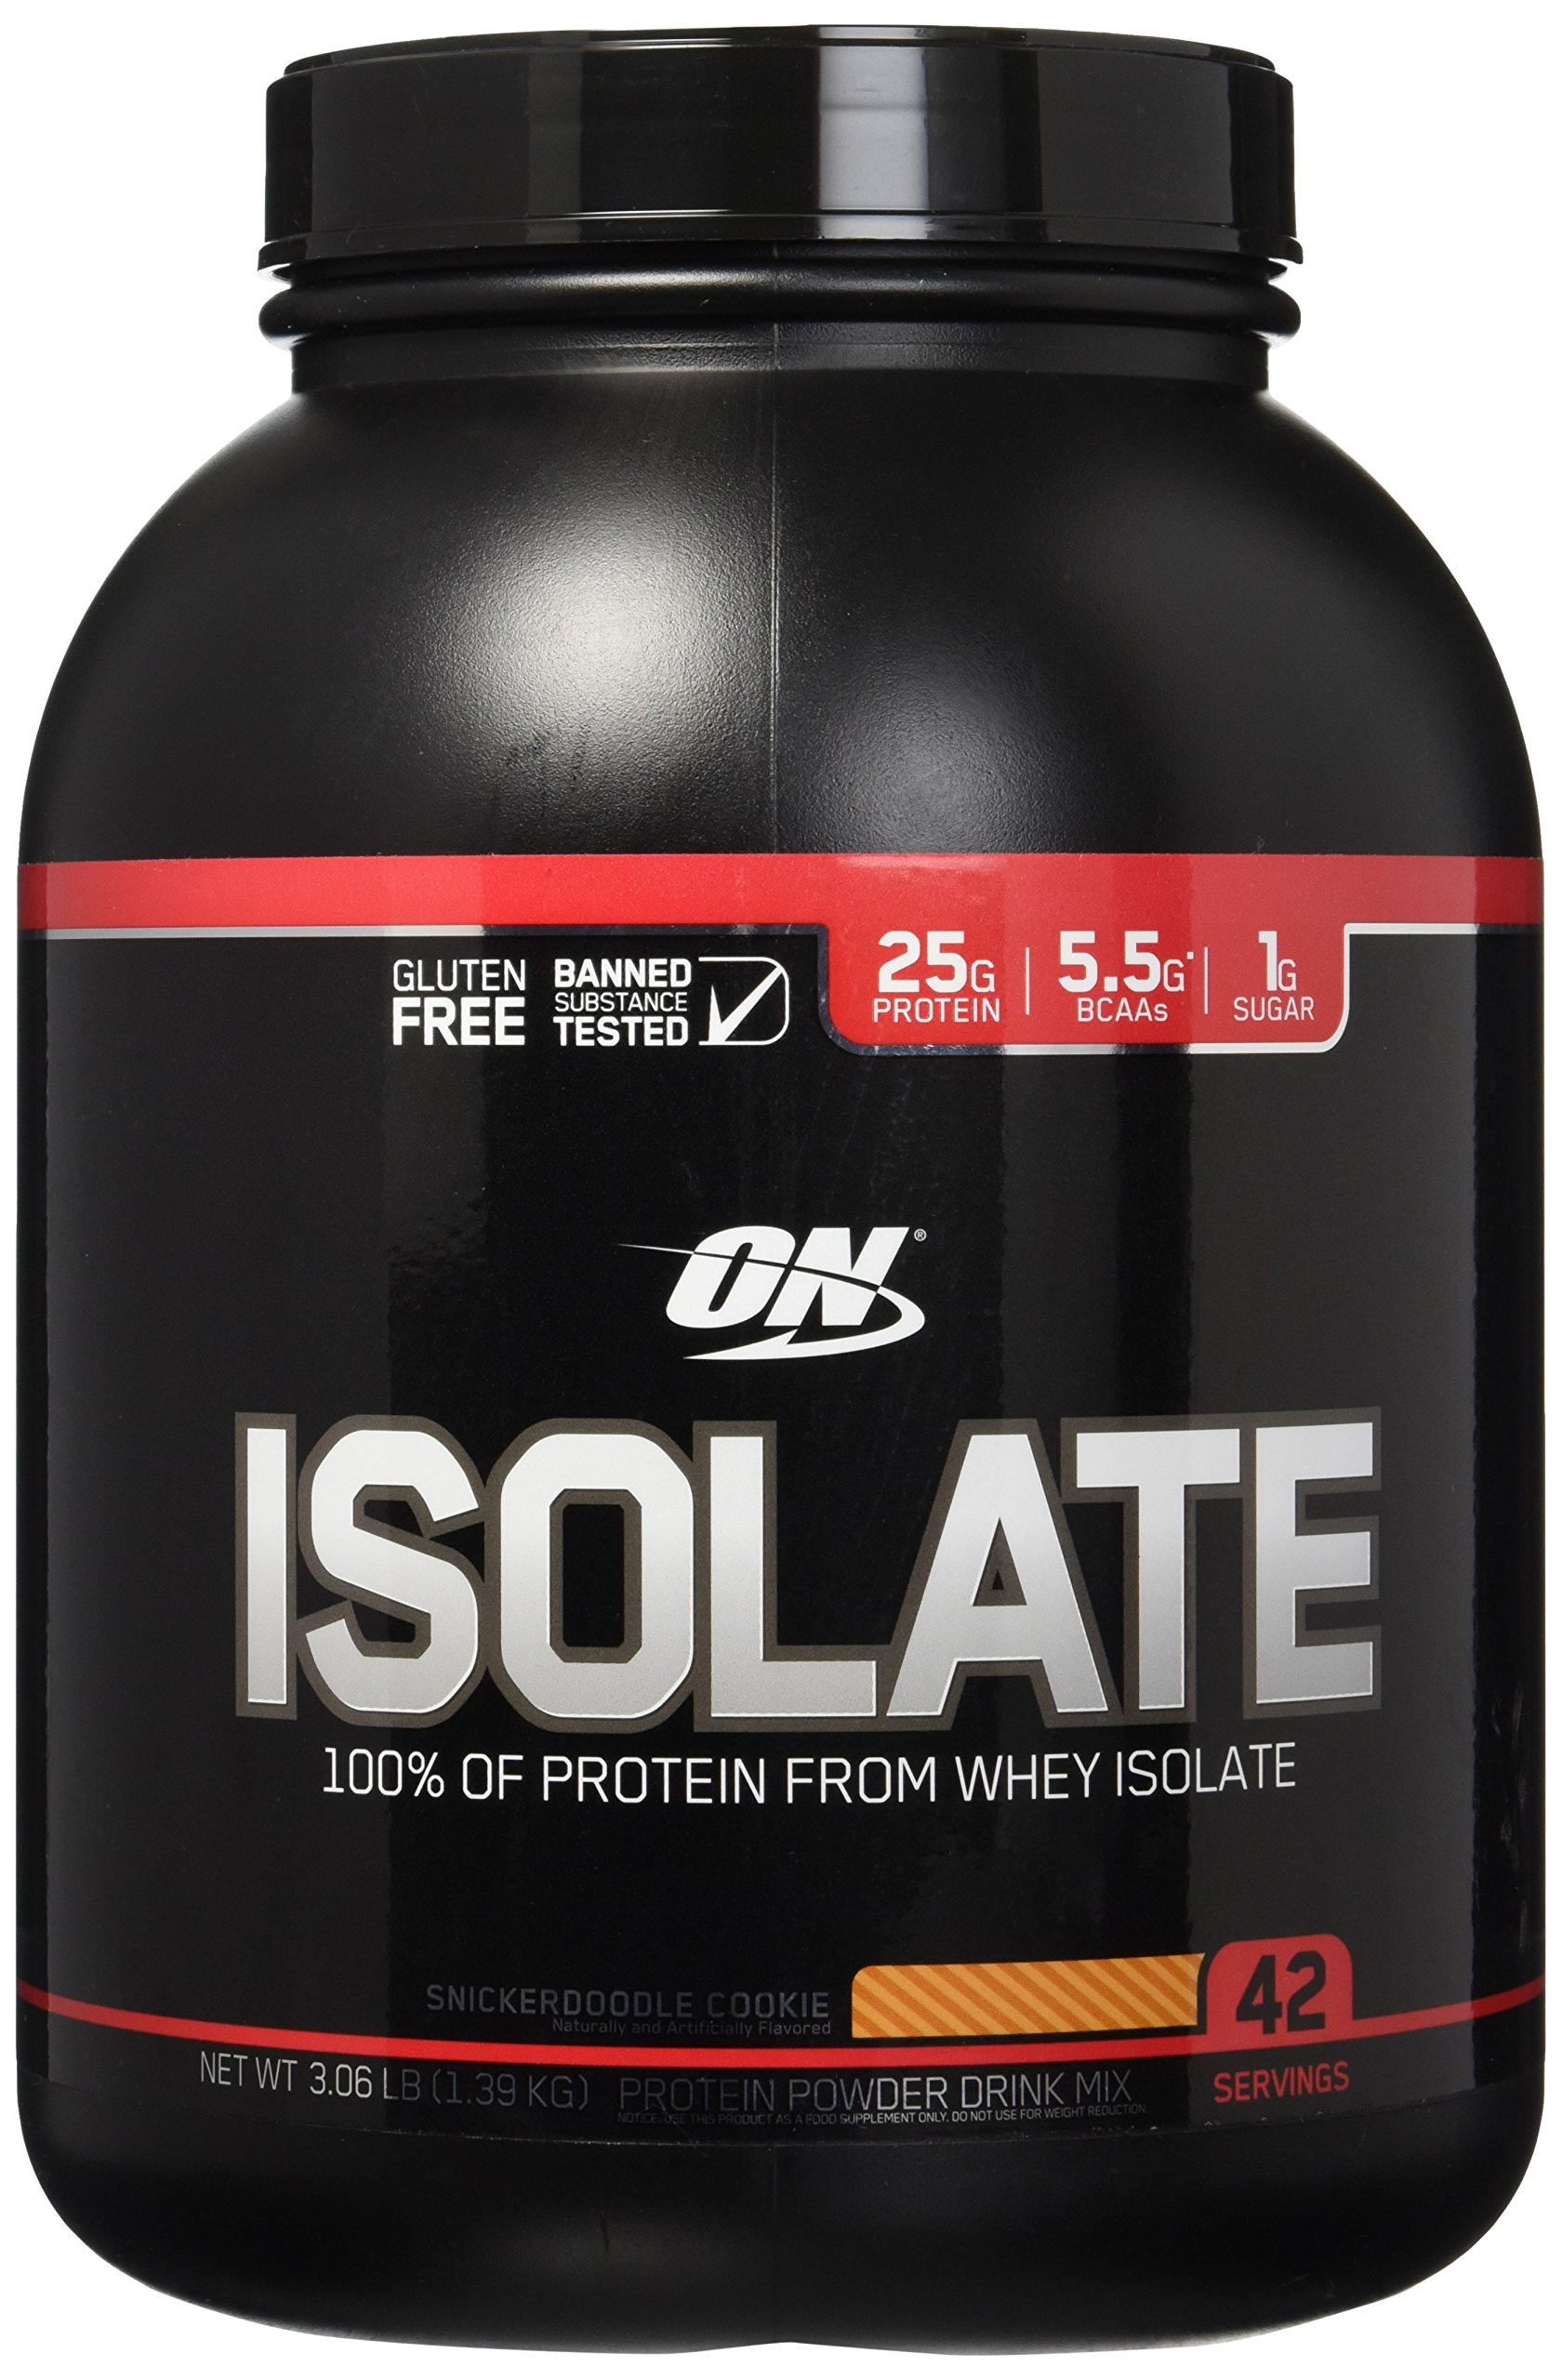 OPTIMUM NUTRITION Isolate, Snickerdoodle Cookie, 3 Pound